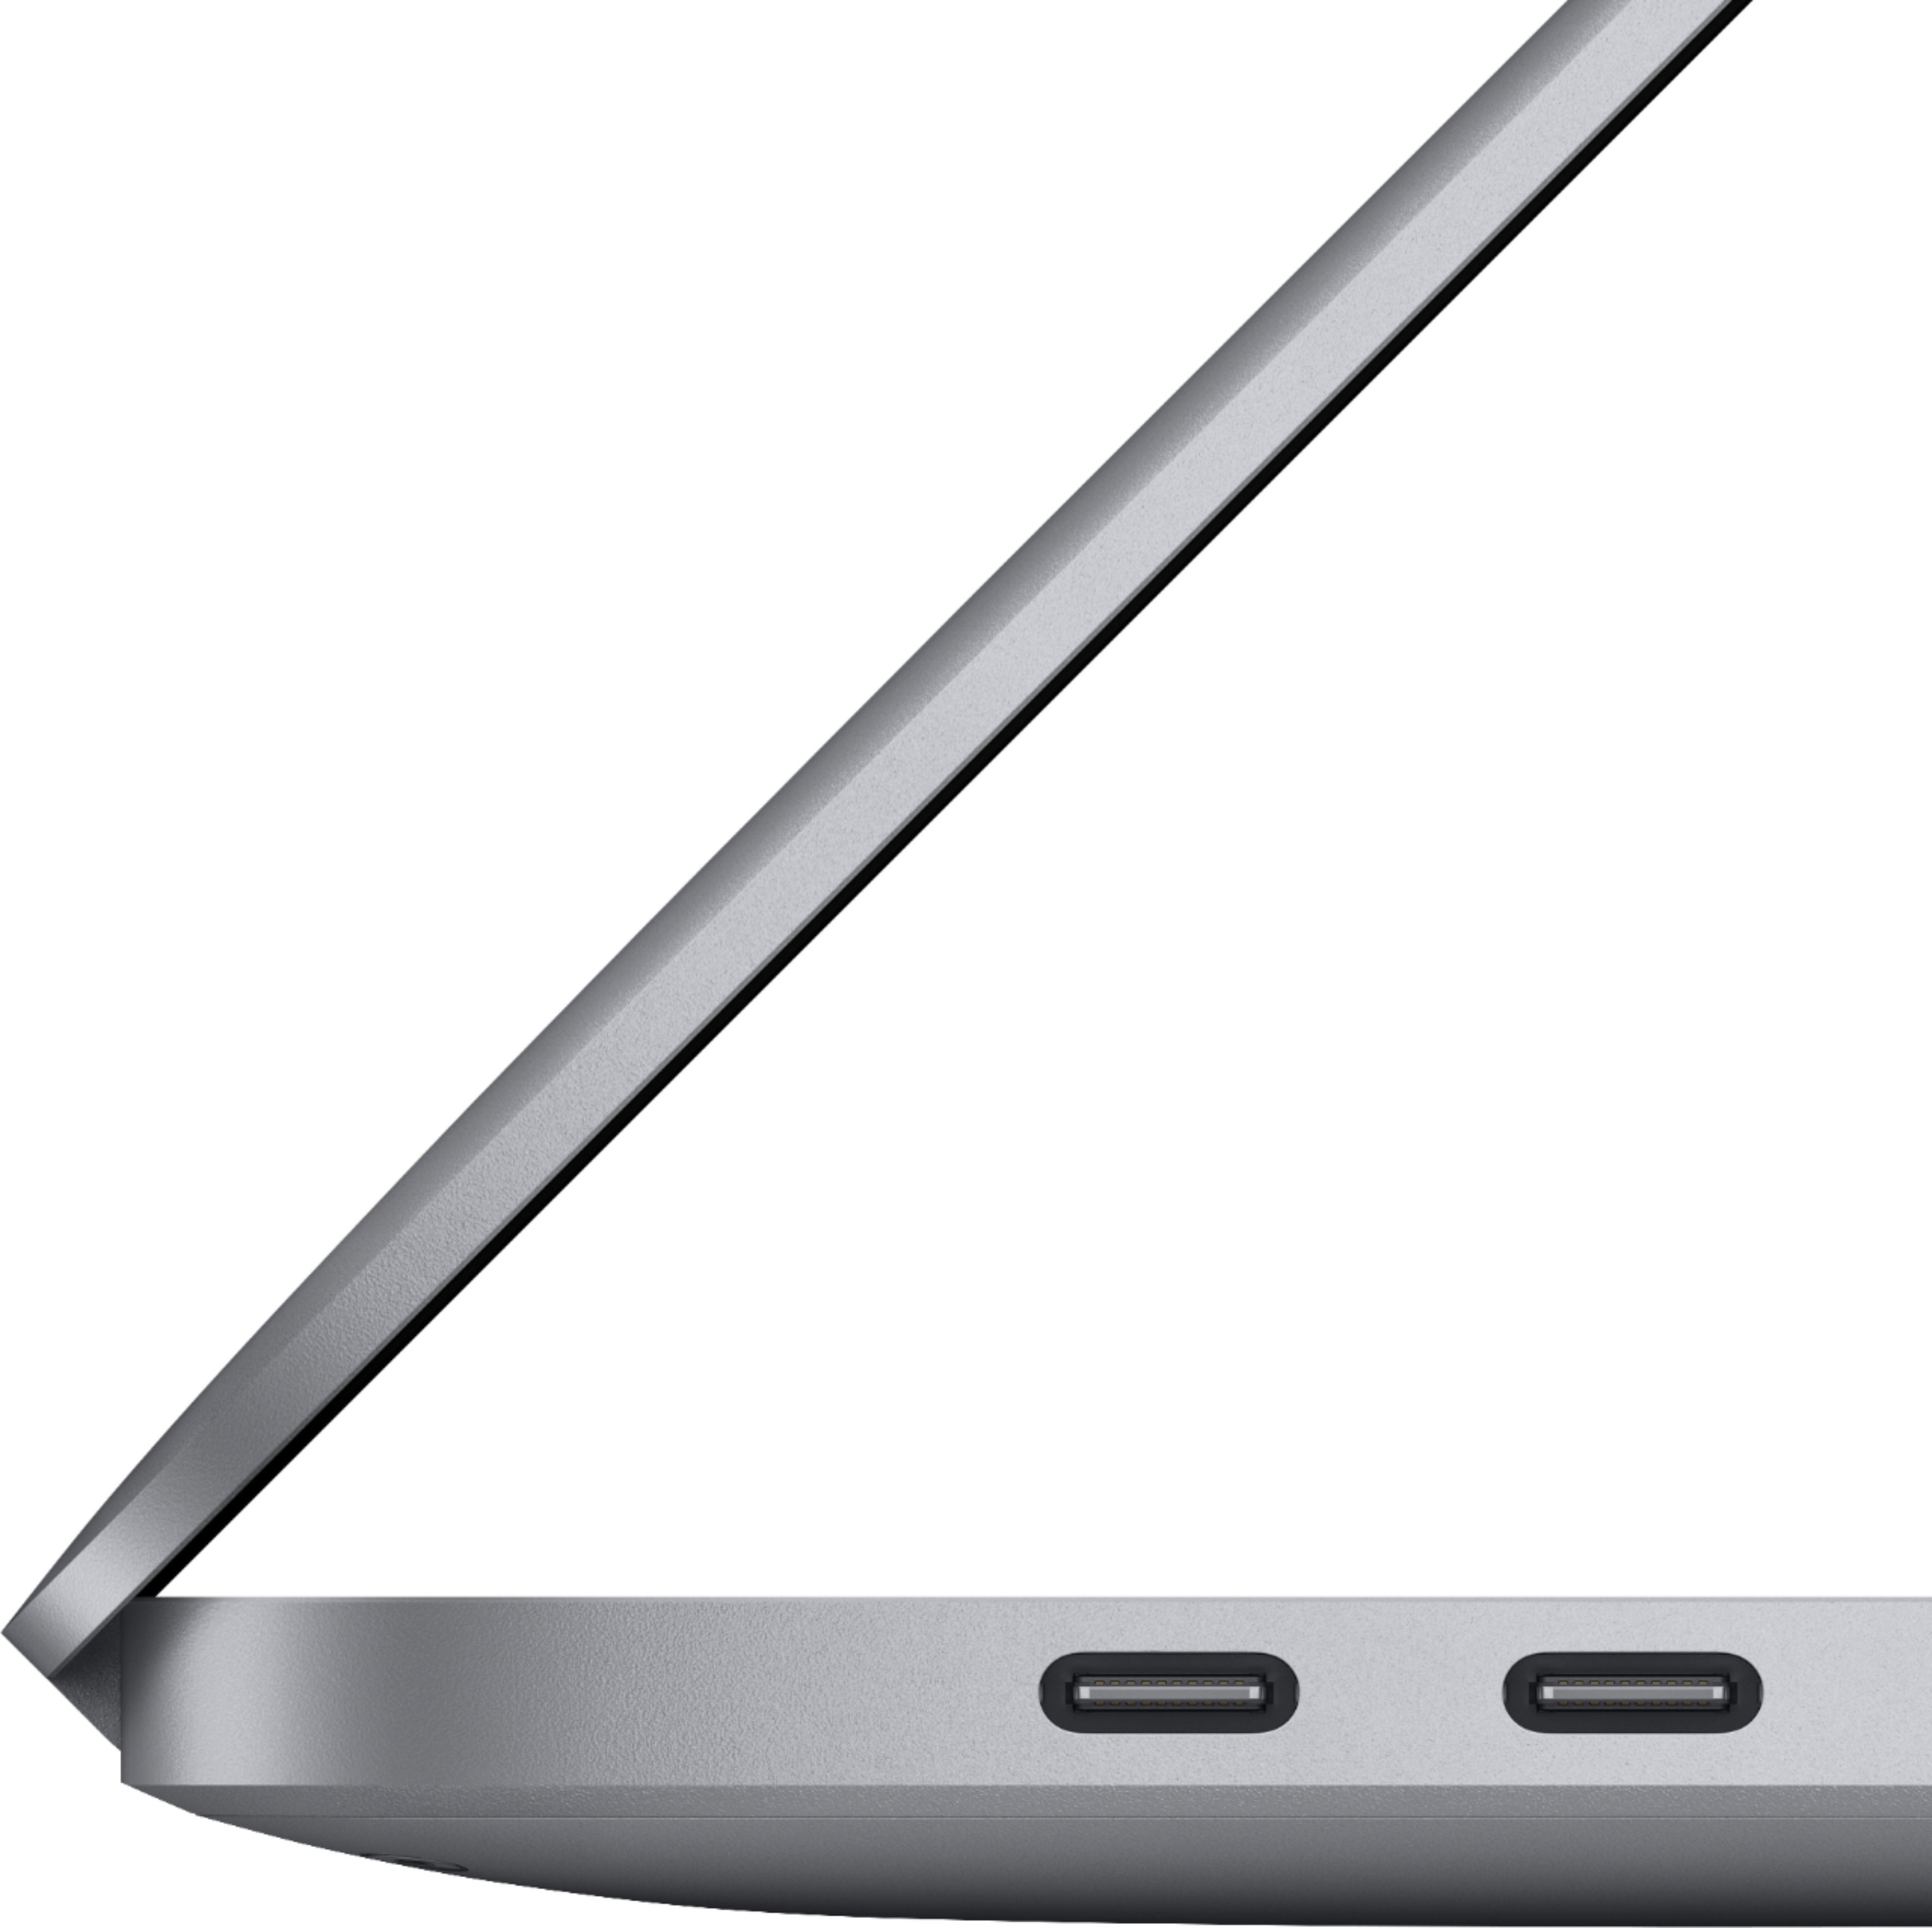 """Alt View Zoom 14. Apple - MacBook Pro - 16"""" Display with Touch Bar - Intel Core i9 - 16GB Memory - AMD Radeon Pro 5500M - 1TB SSD (Latest Model) - Space Gray."""